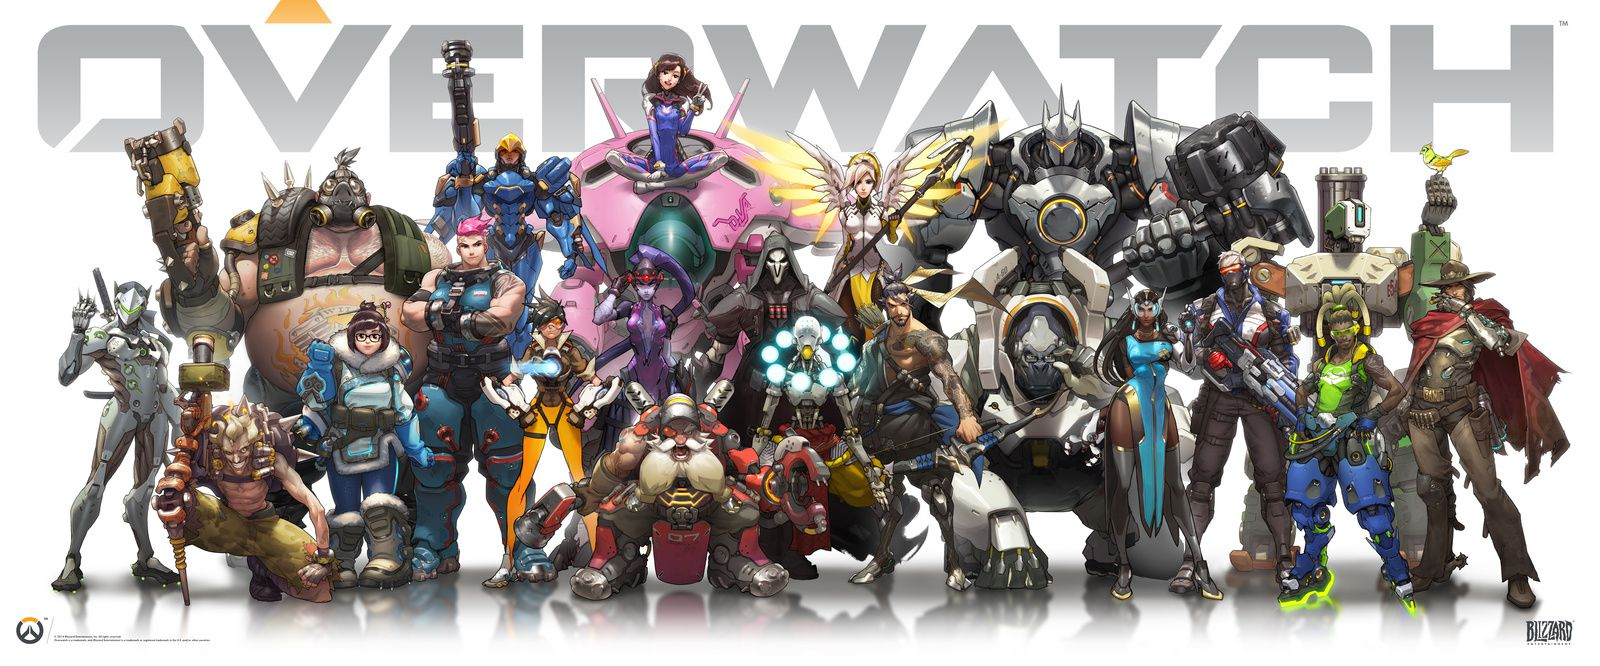 Personnages d'Overwatch